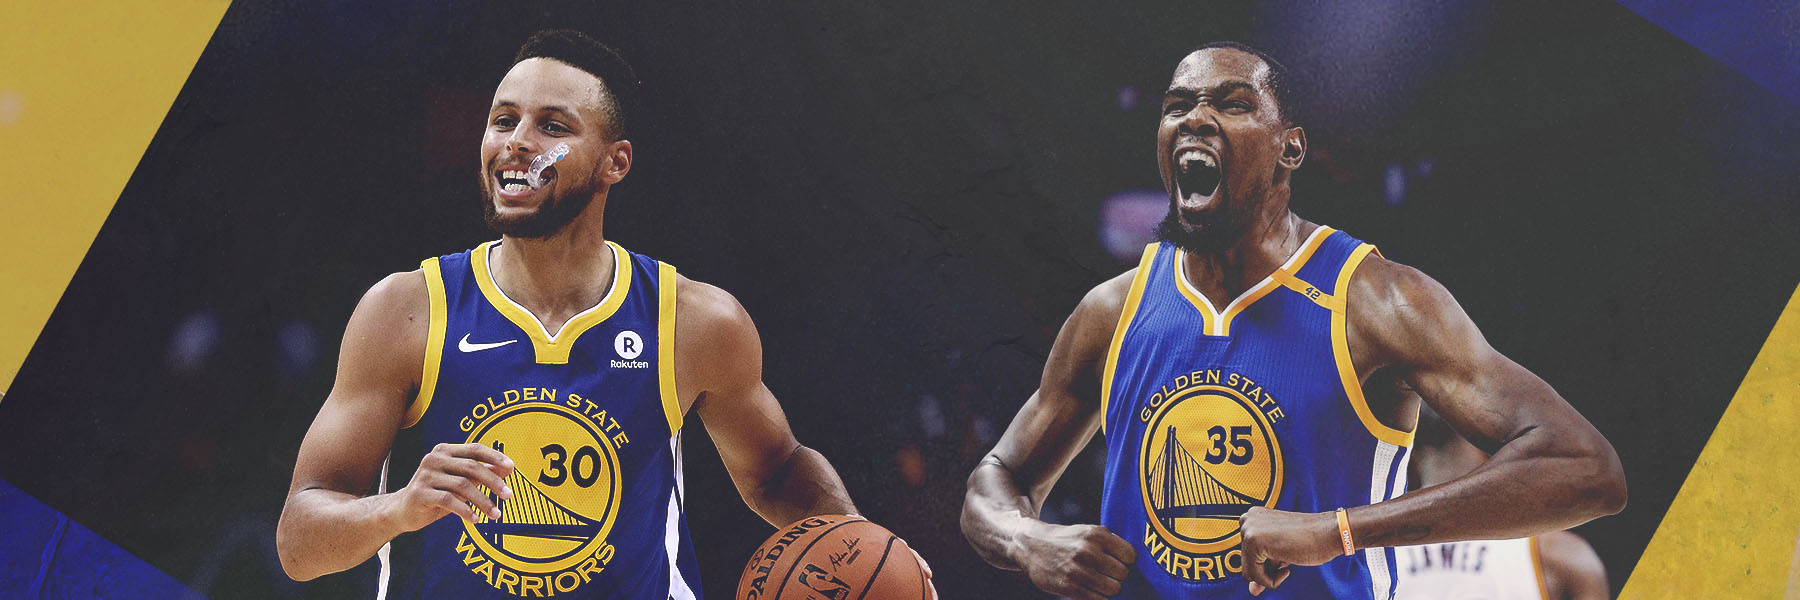 2017-18 Season Opener Warriors Mobile Wallpapers/Lock Screens    Download: Stephen Curry  |  Kevin Durant  |  Klay Thompson  |  Draymond Green  |  Andre Iguodala  |  Jordan Bell  |  Nick Young   Featured by  Golden State Warriors .